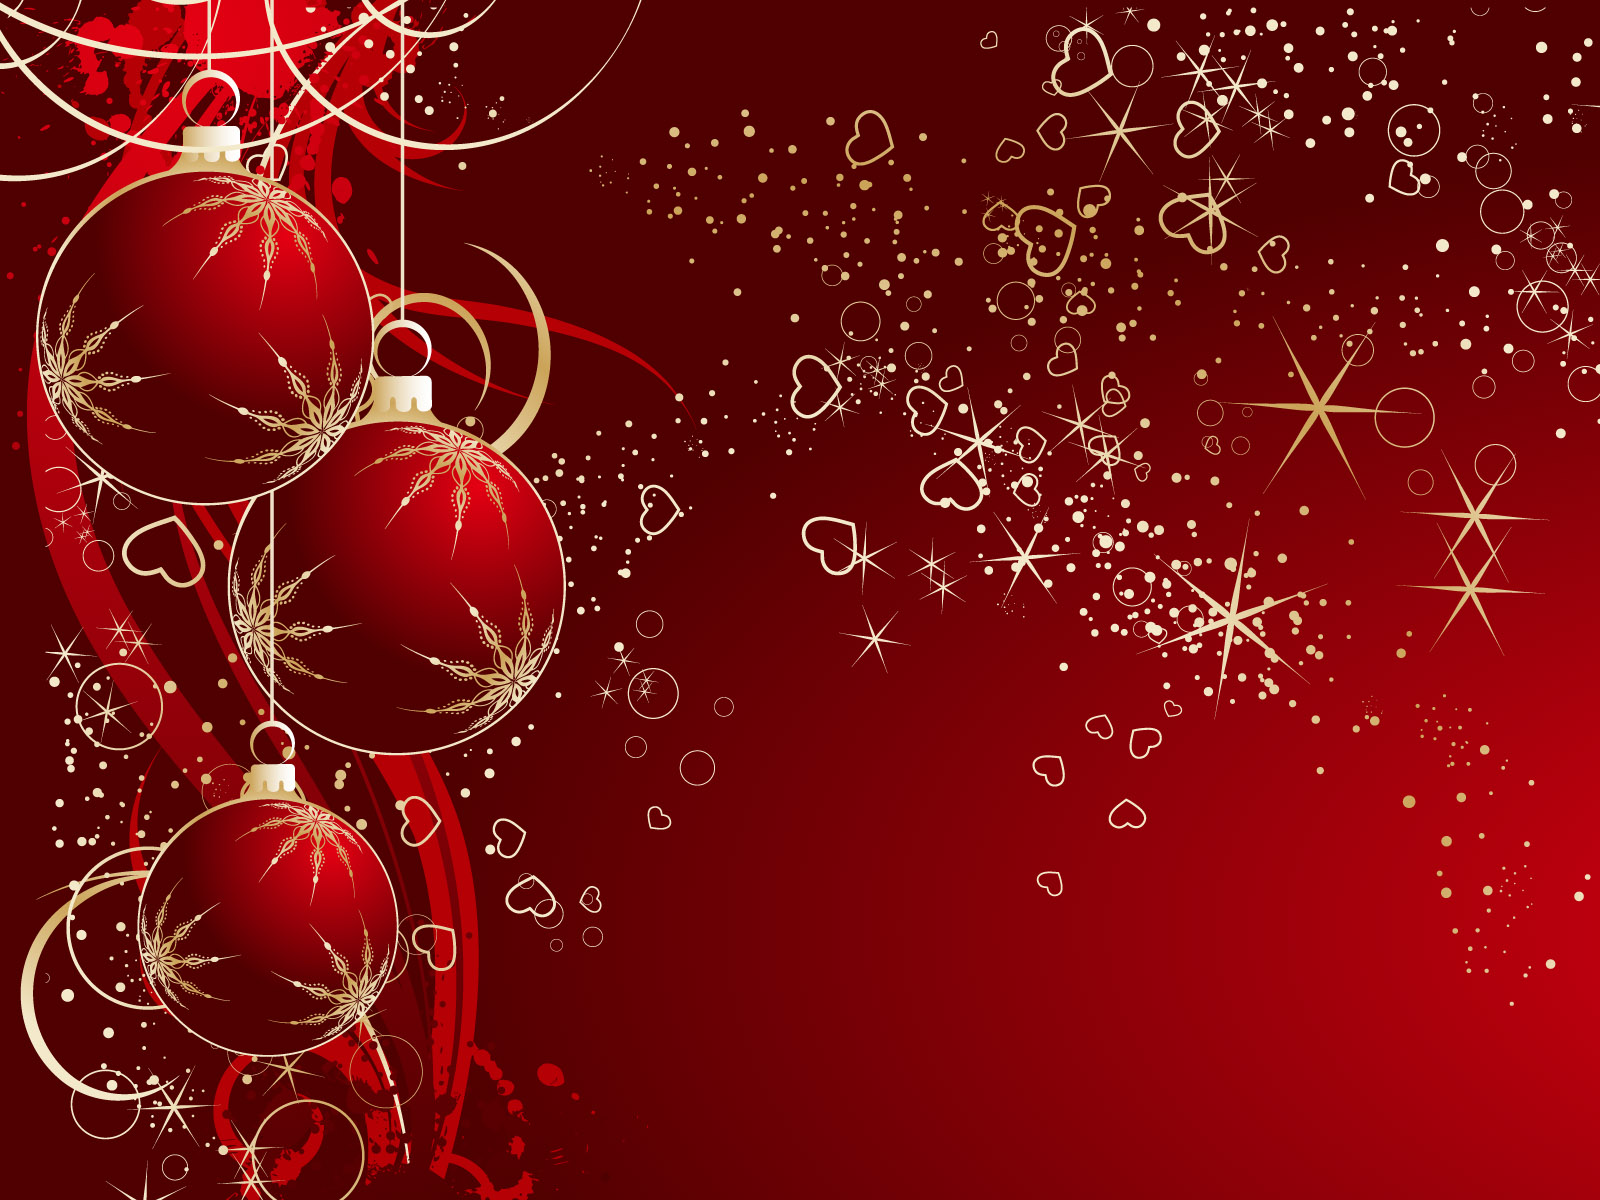 Abstract red and white Christmas wallpaper HD ~ The Wallpaper Database